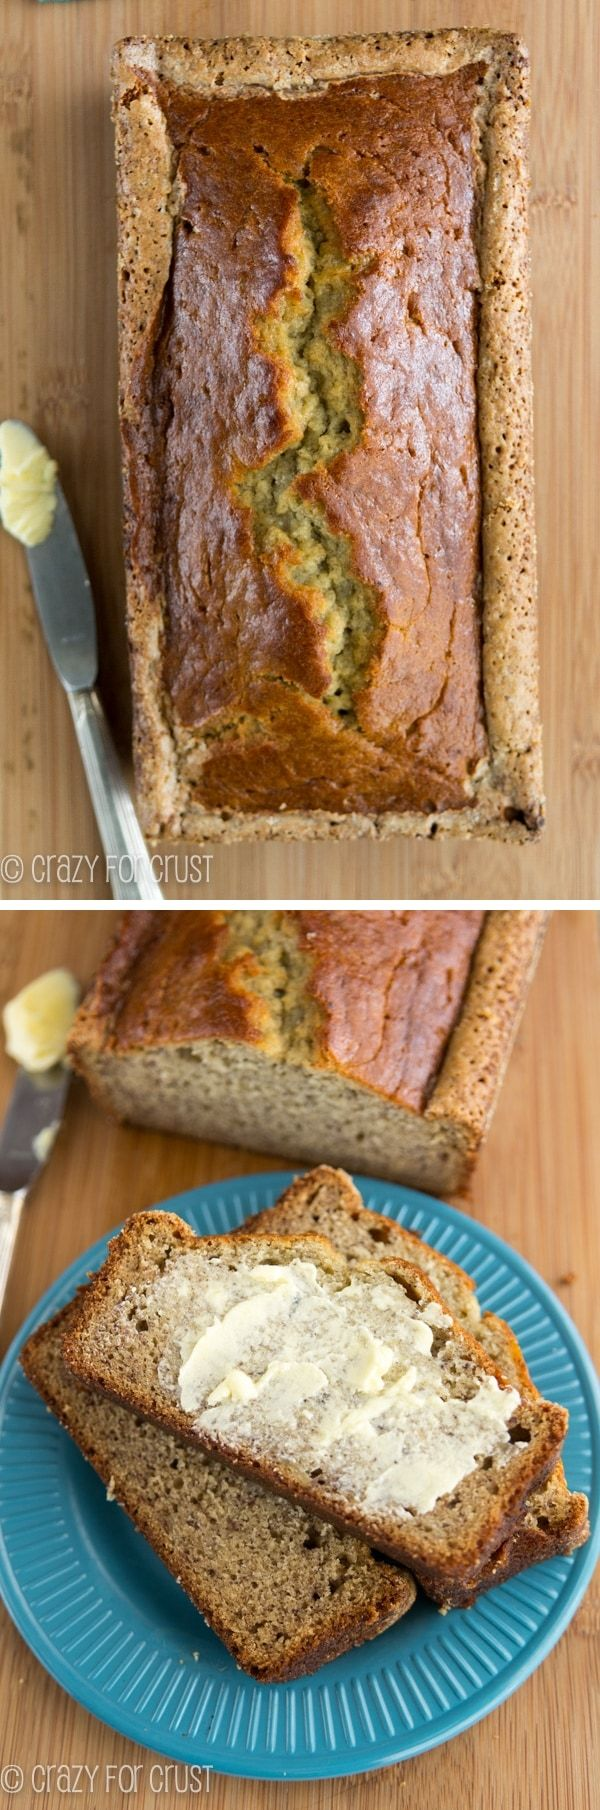 Moms banana bread crazyforcrust the perfect banana bread moms banana bread crazyforcrust the perfect banana bread recipe straight from forumfinder Image collections